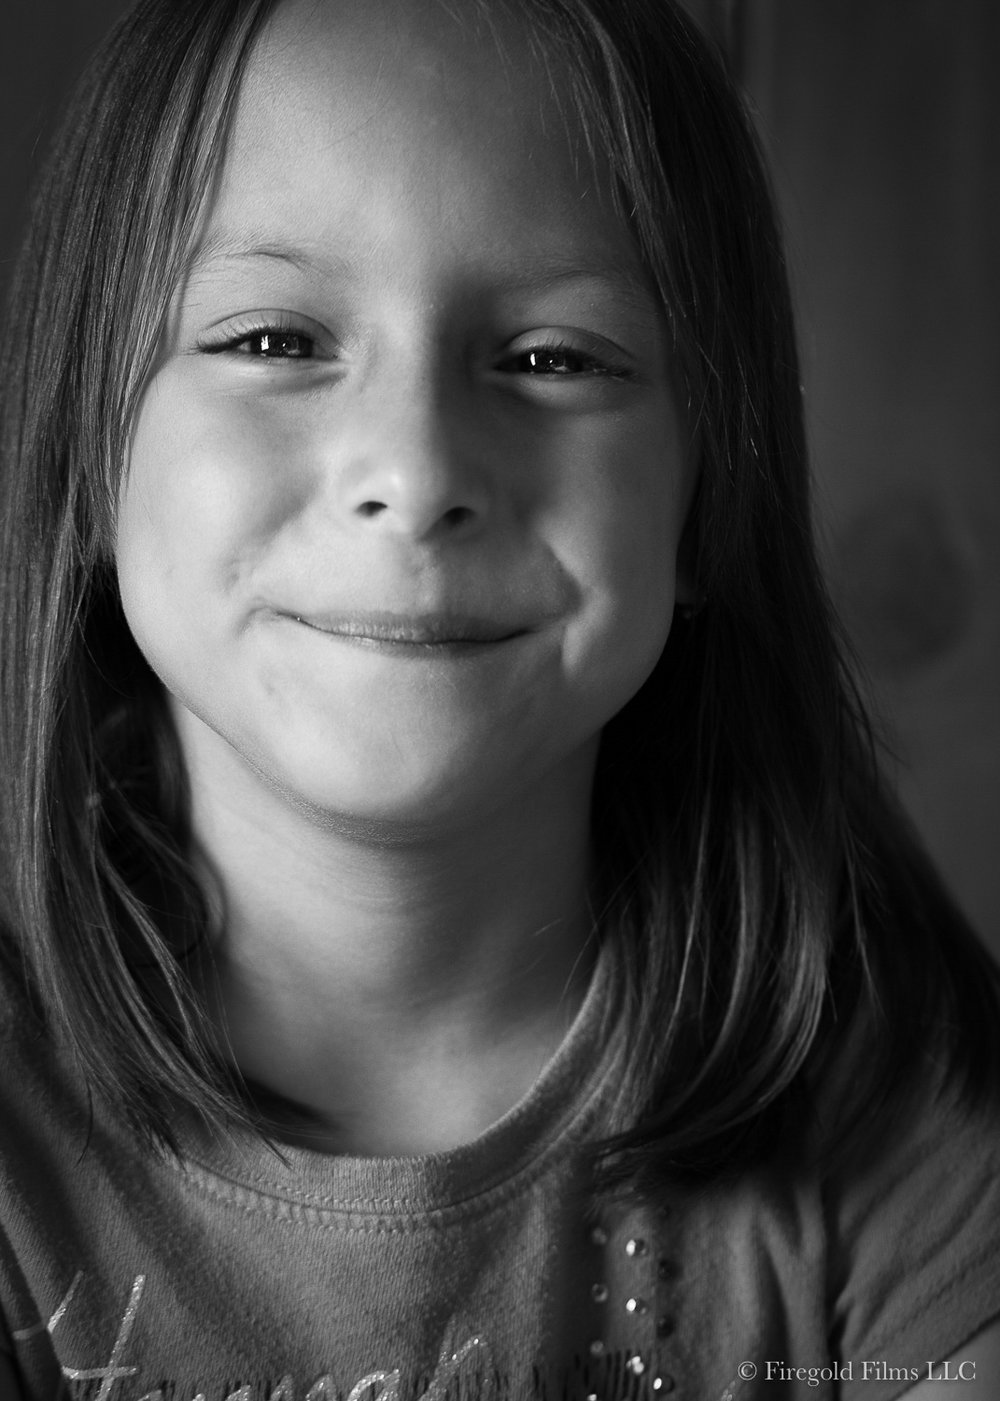 child-portrait-black-and-white.jpg